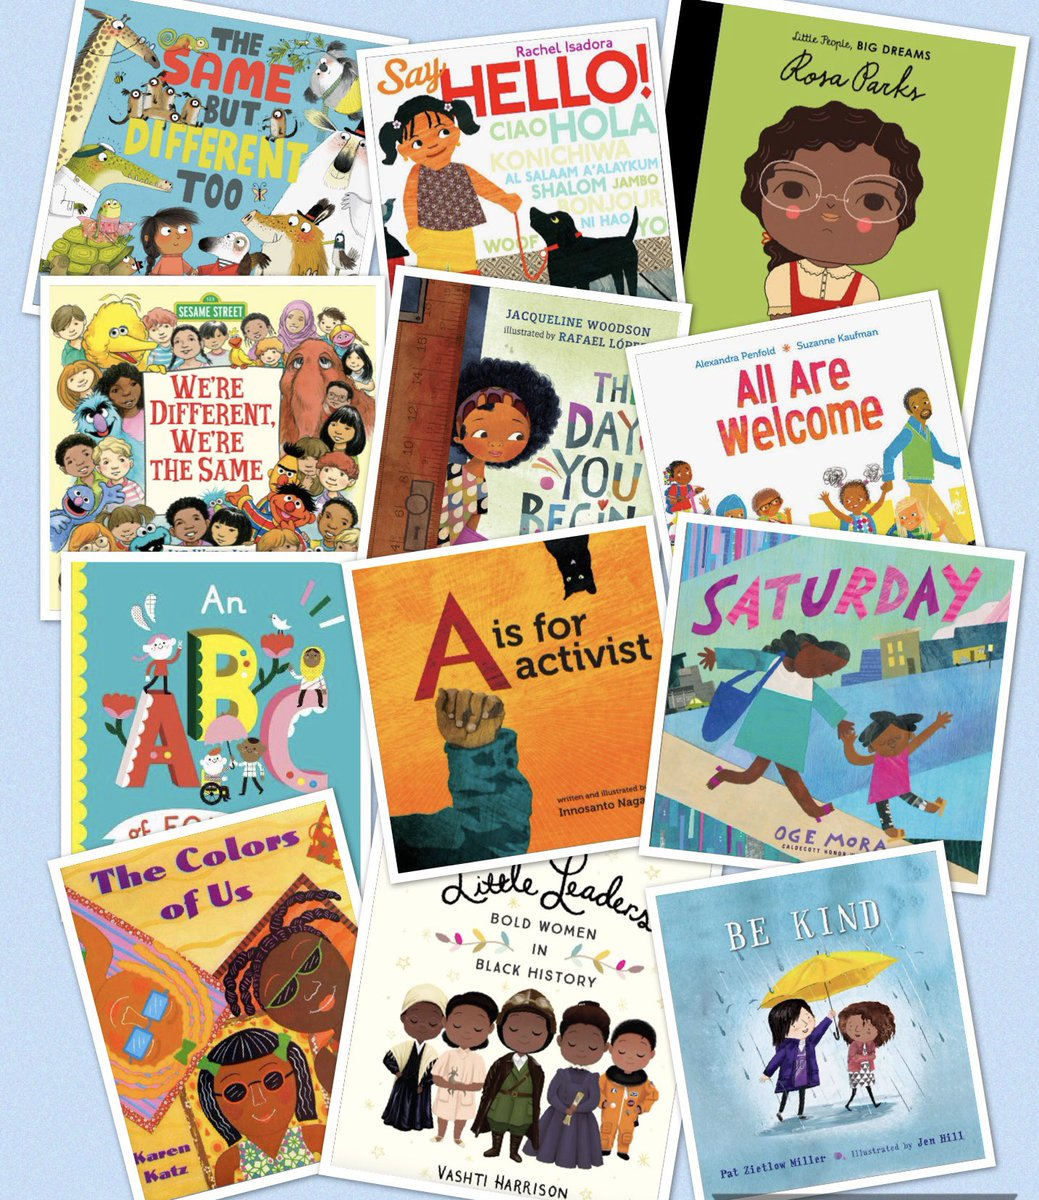 We've compiled a list of some of our favorite children's books that encourage conversations about race, understanding, and inclusion. We have found these books to be helpful when having these important conversations with kids